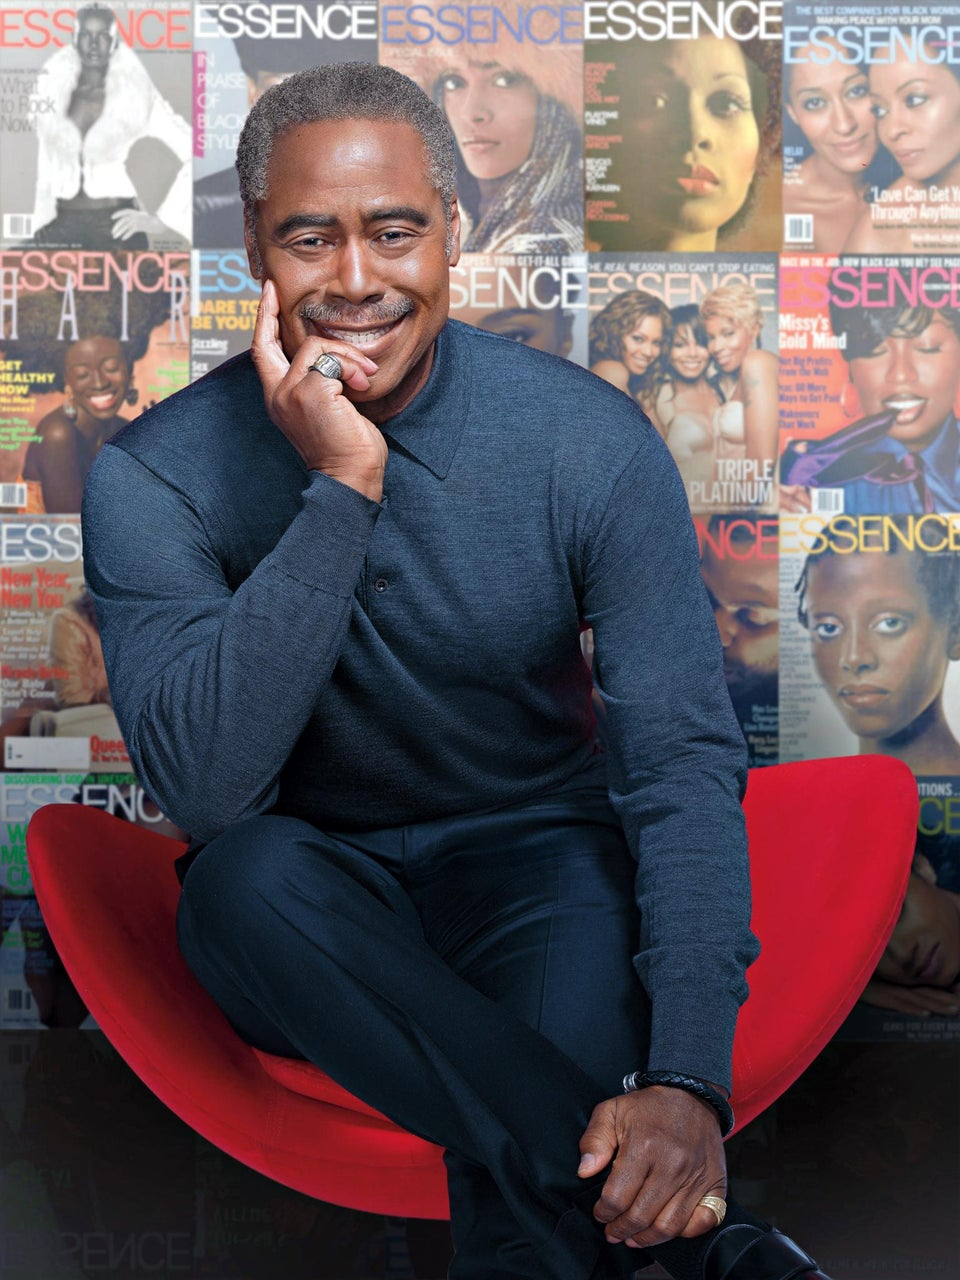 Book Excerpt: 'The Man From ESSENCE' - Essence